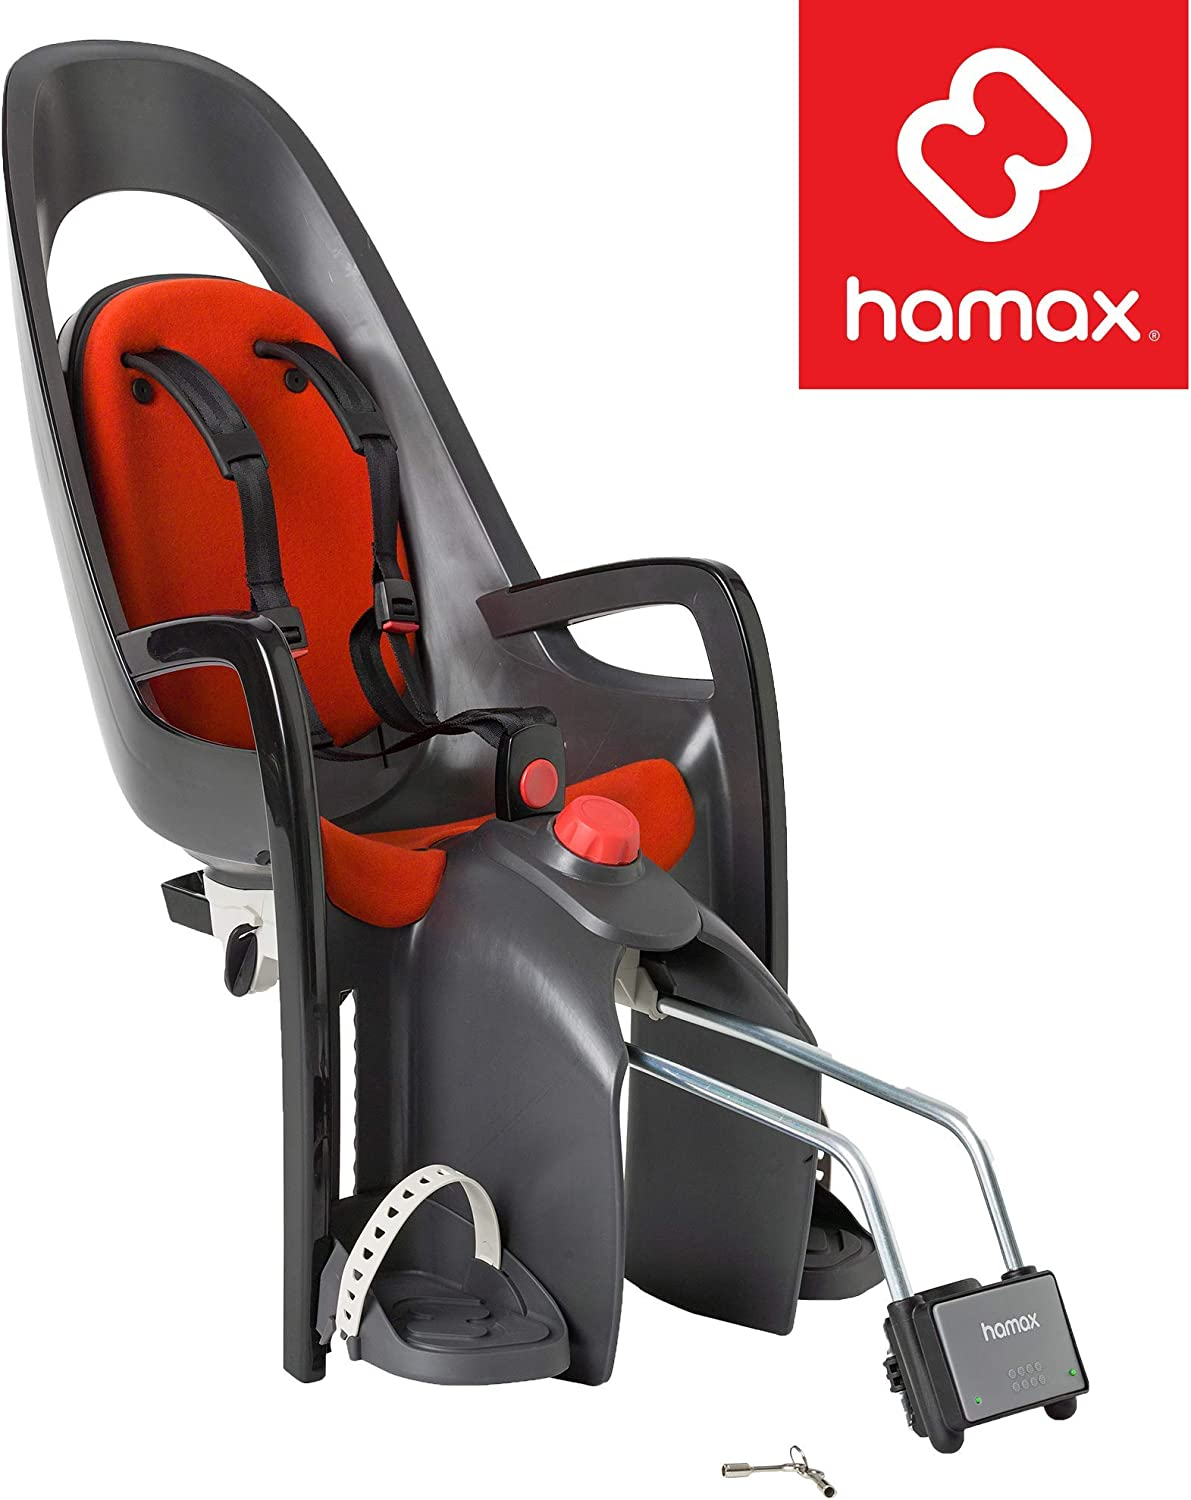 Top 14 Best Kid Seat For Bikes (2020 Reviews & Buying Guide) 14